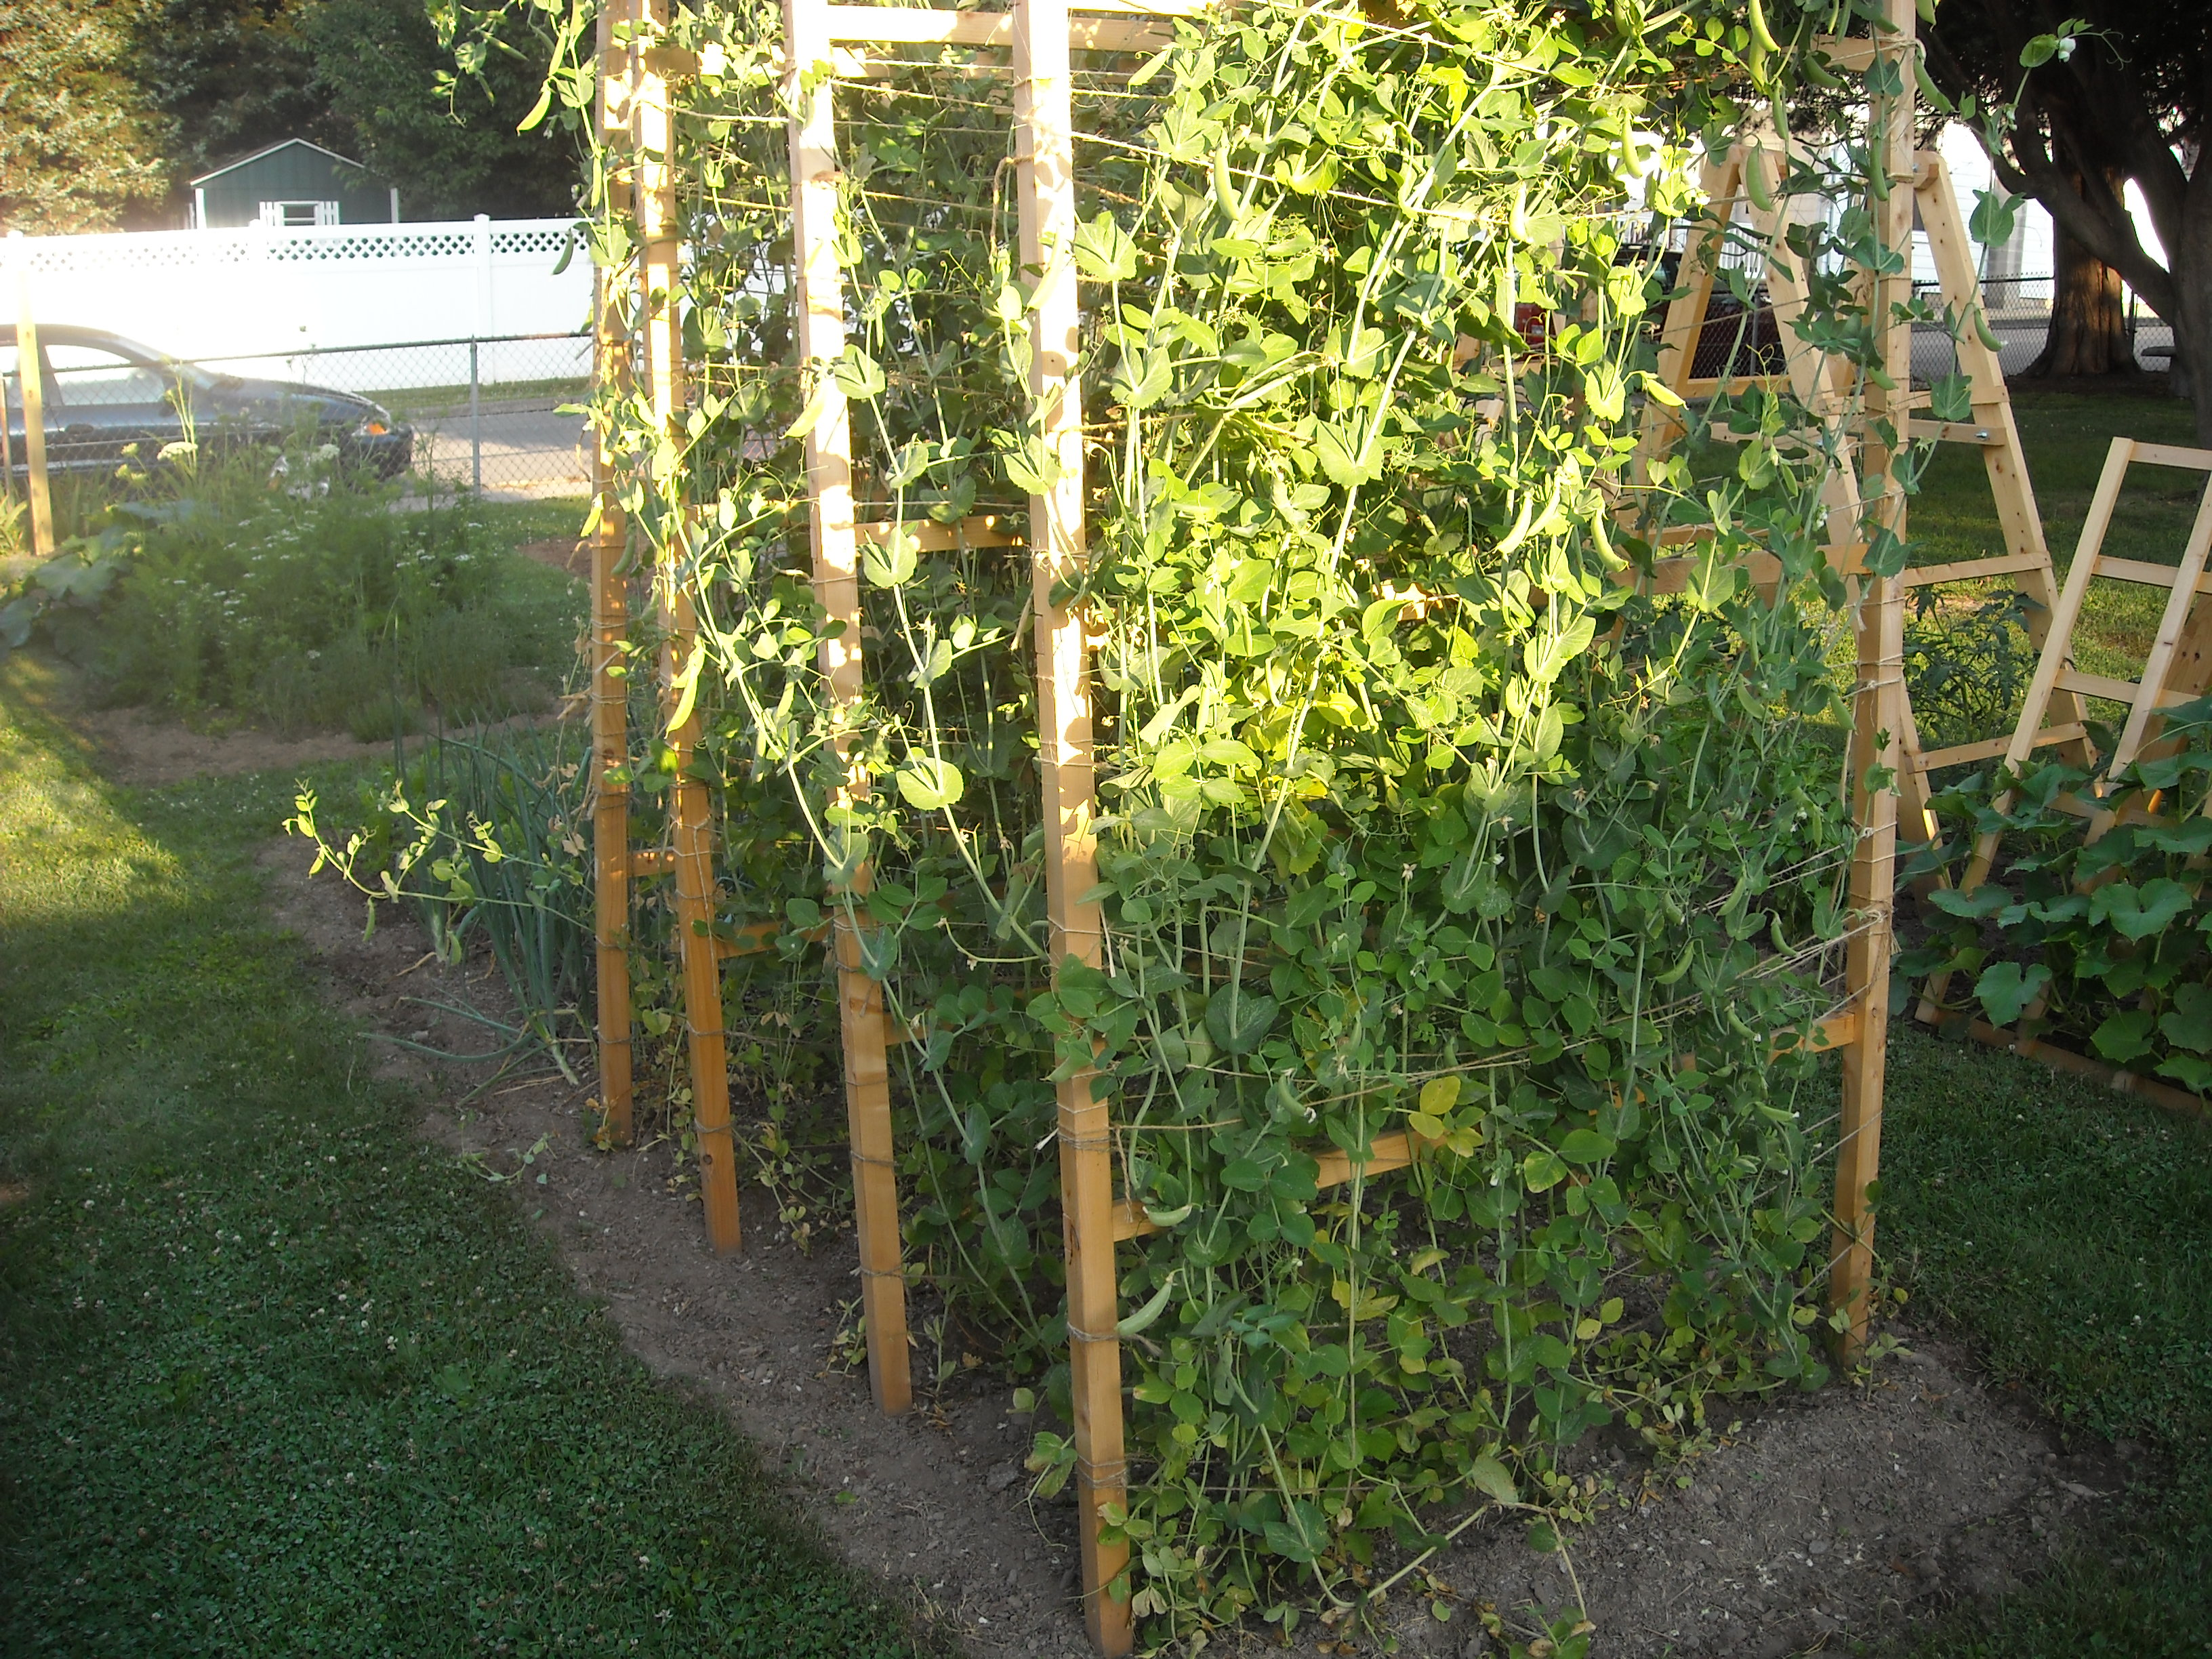 Sugar snap peas growing on pea fences.